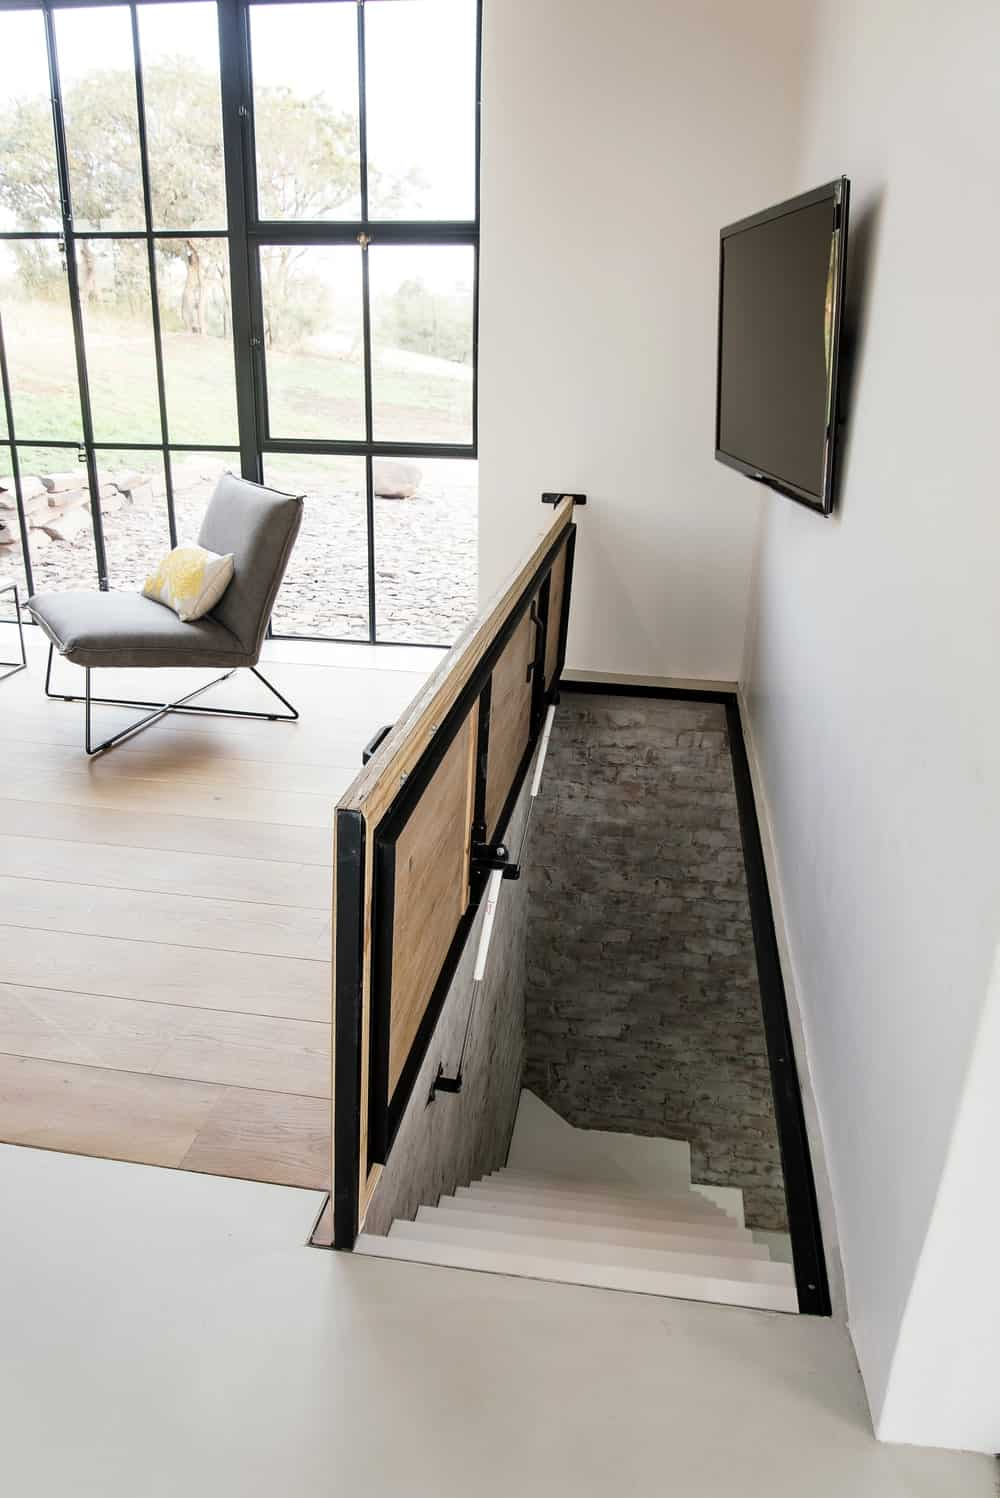 Staircase leading to the basement in The Conservatory designed by Nadine Engelbrecht.